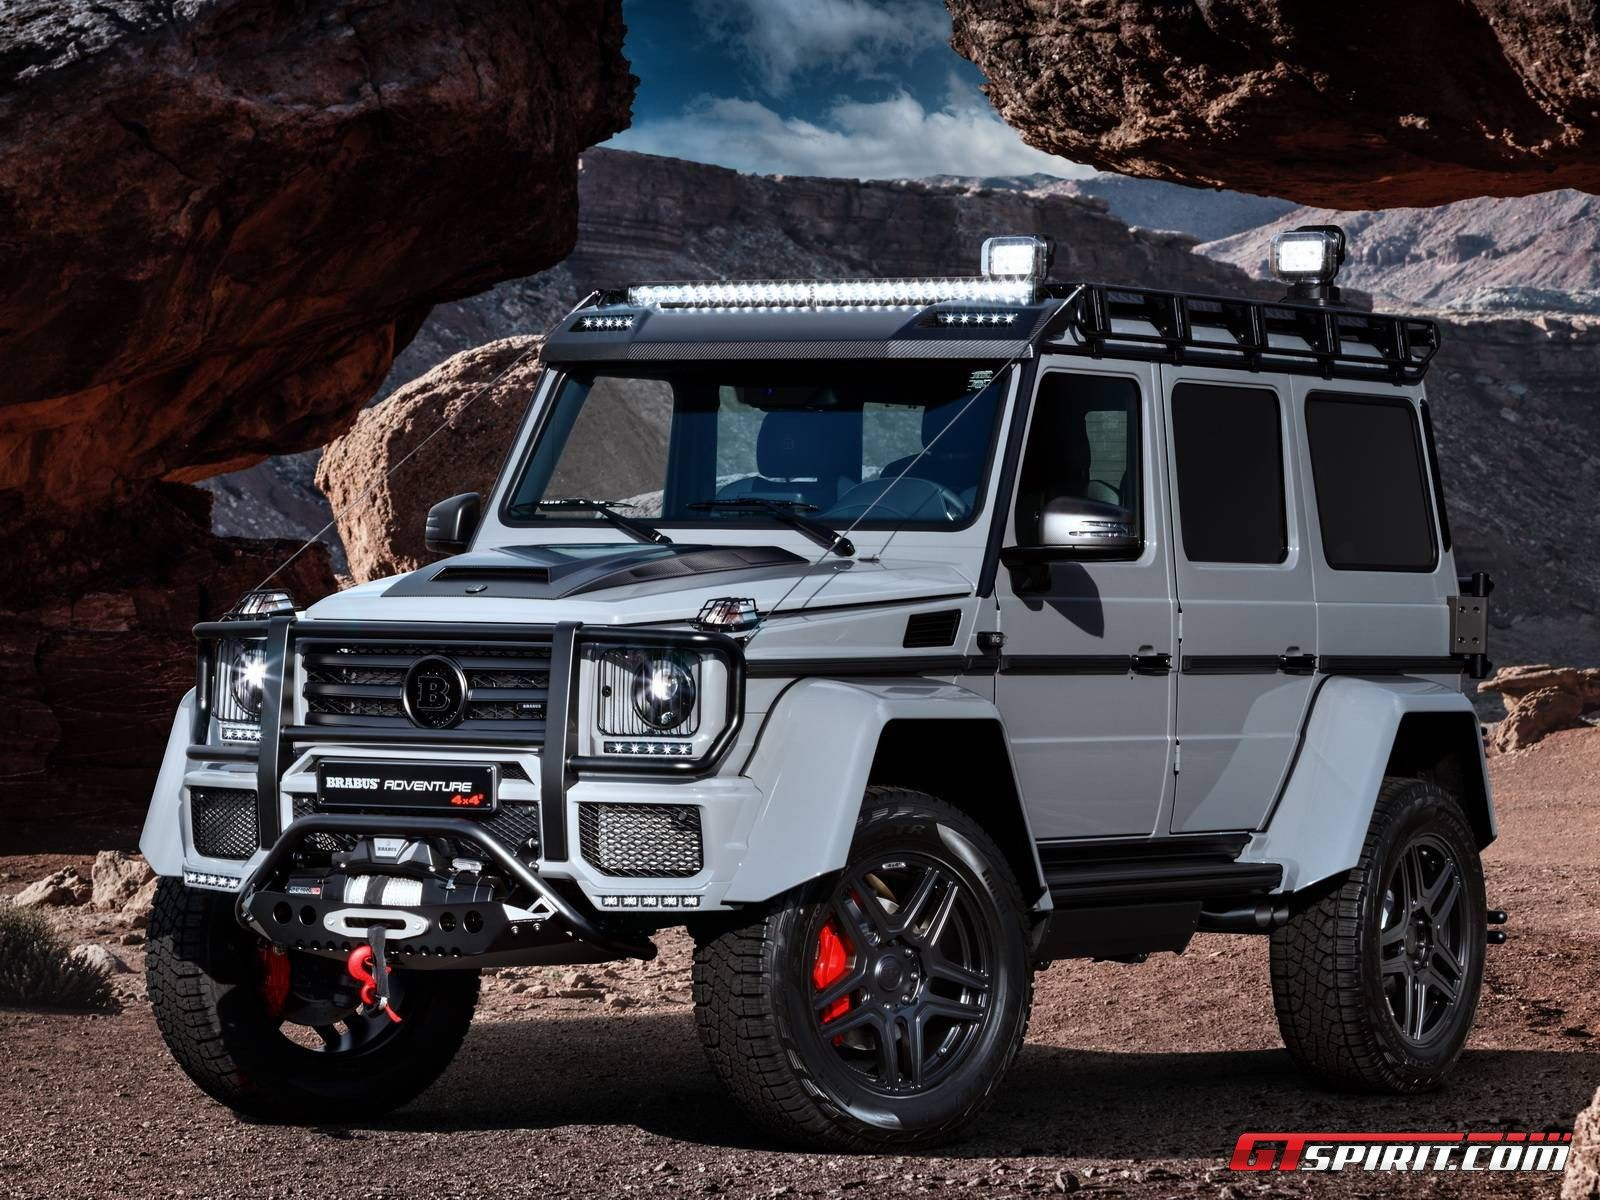 Mercedes Benz G 500 4—4² Brabus 550 Adventure